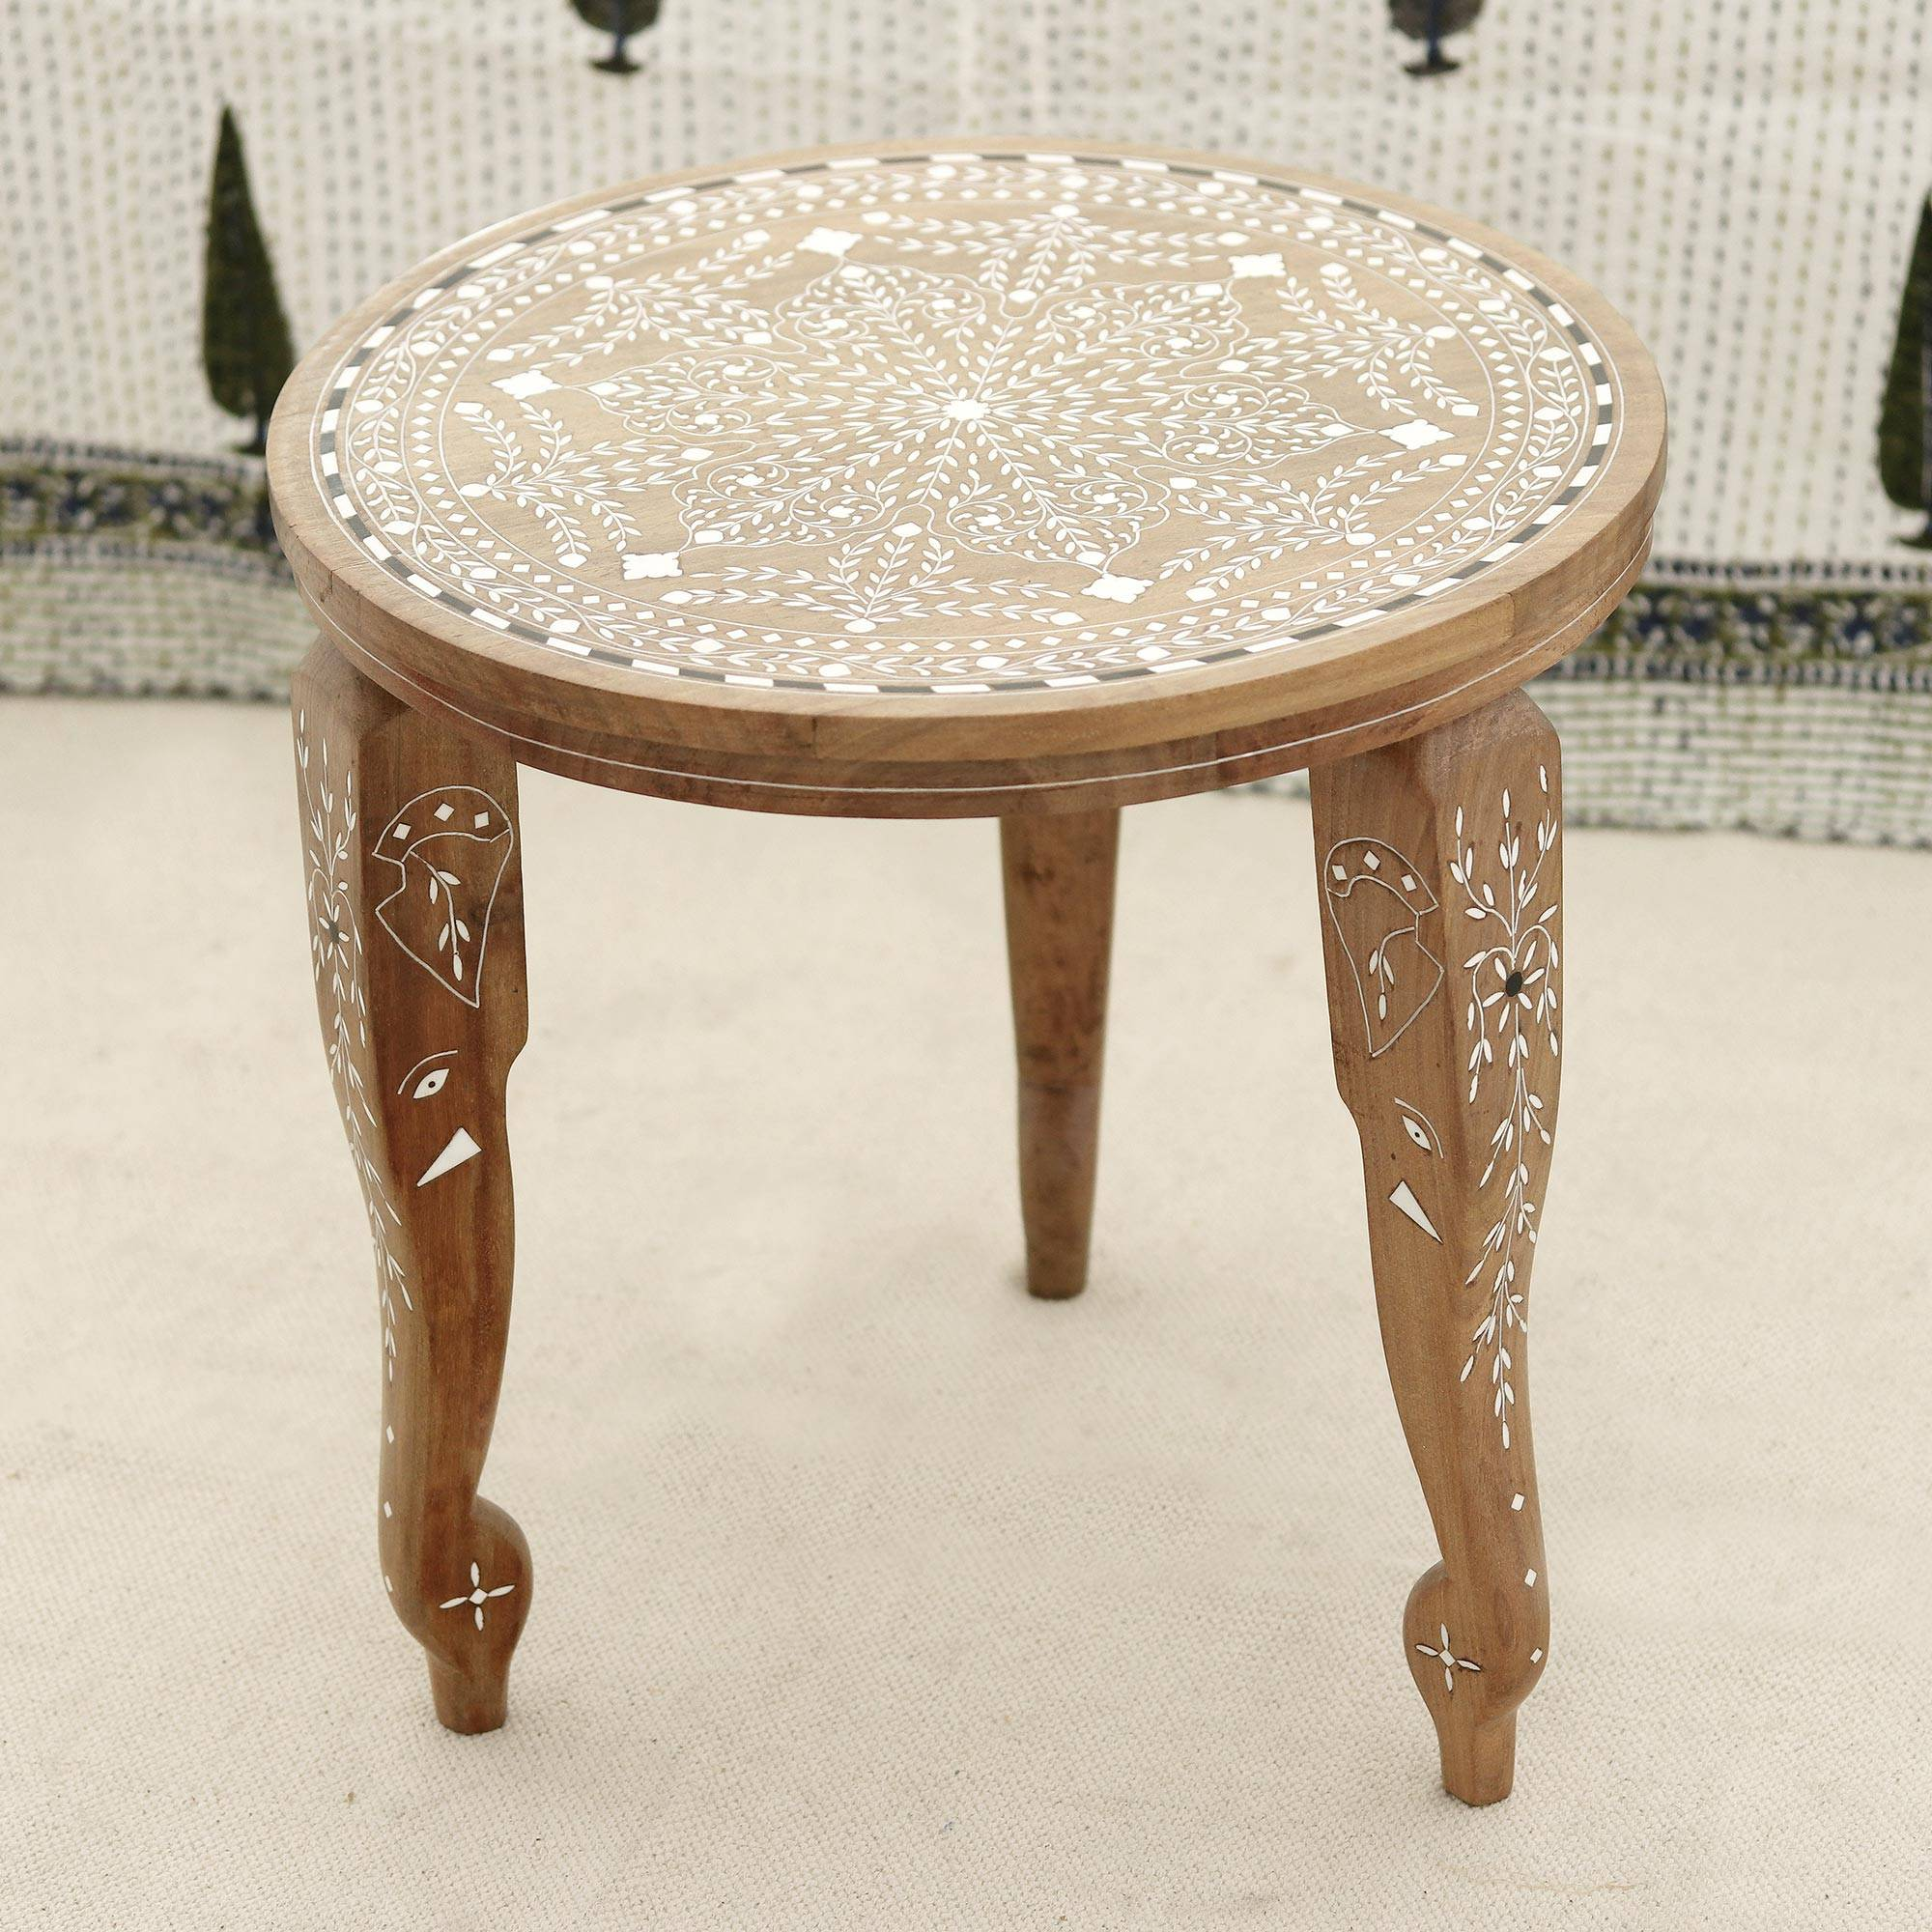 handmade jamun wood end table with leaf motifs from elephant elegant tables majesty teak ashley furniture glass top coffee light brown leather ott sofa pattern white cube bedside